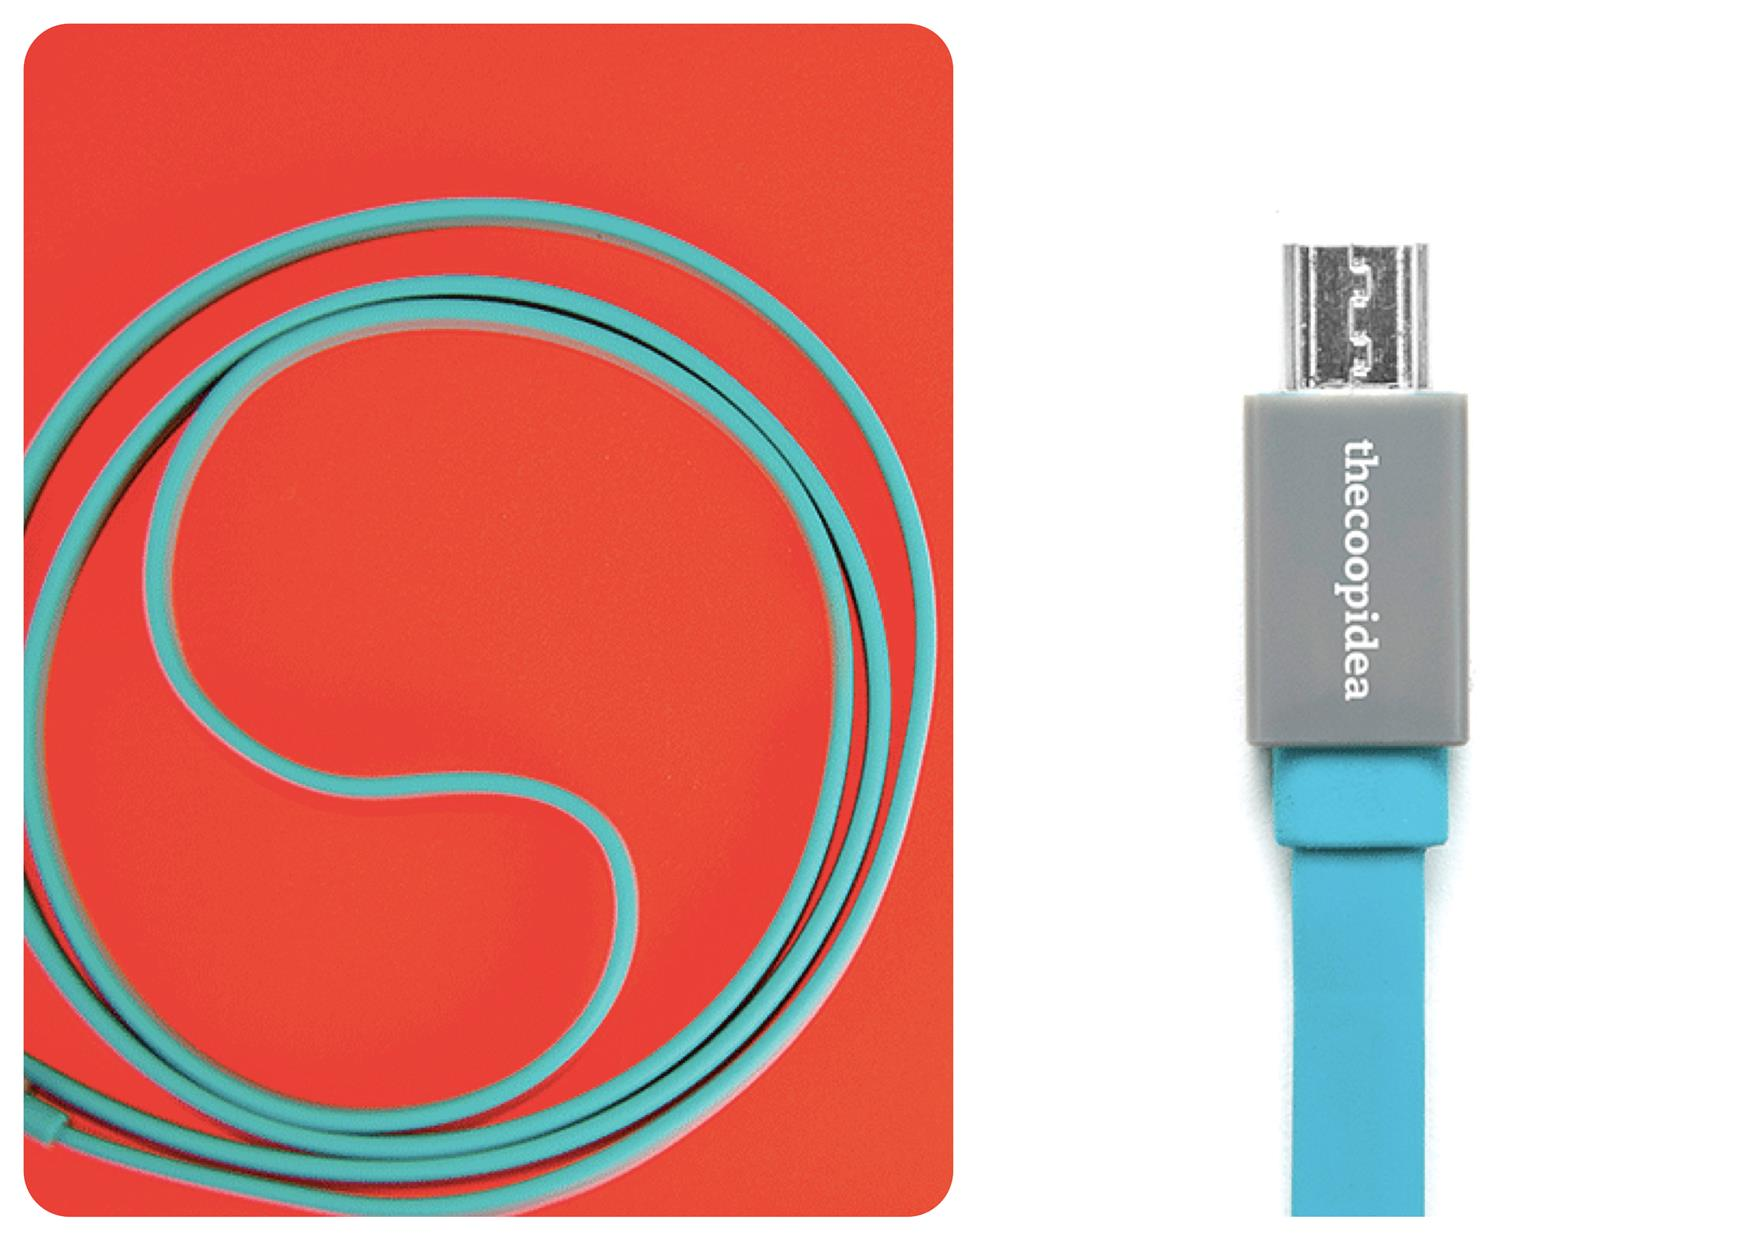 Bdotcom = TheCoopIdea Pasta Micro USB to USB Flat Cable 1m (Blue)